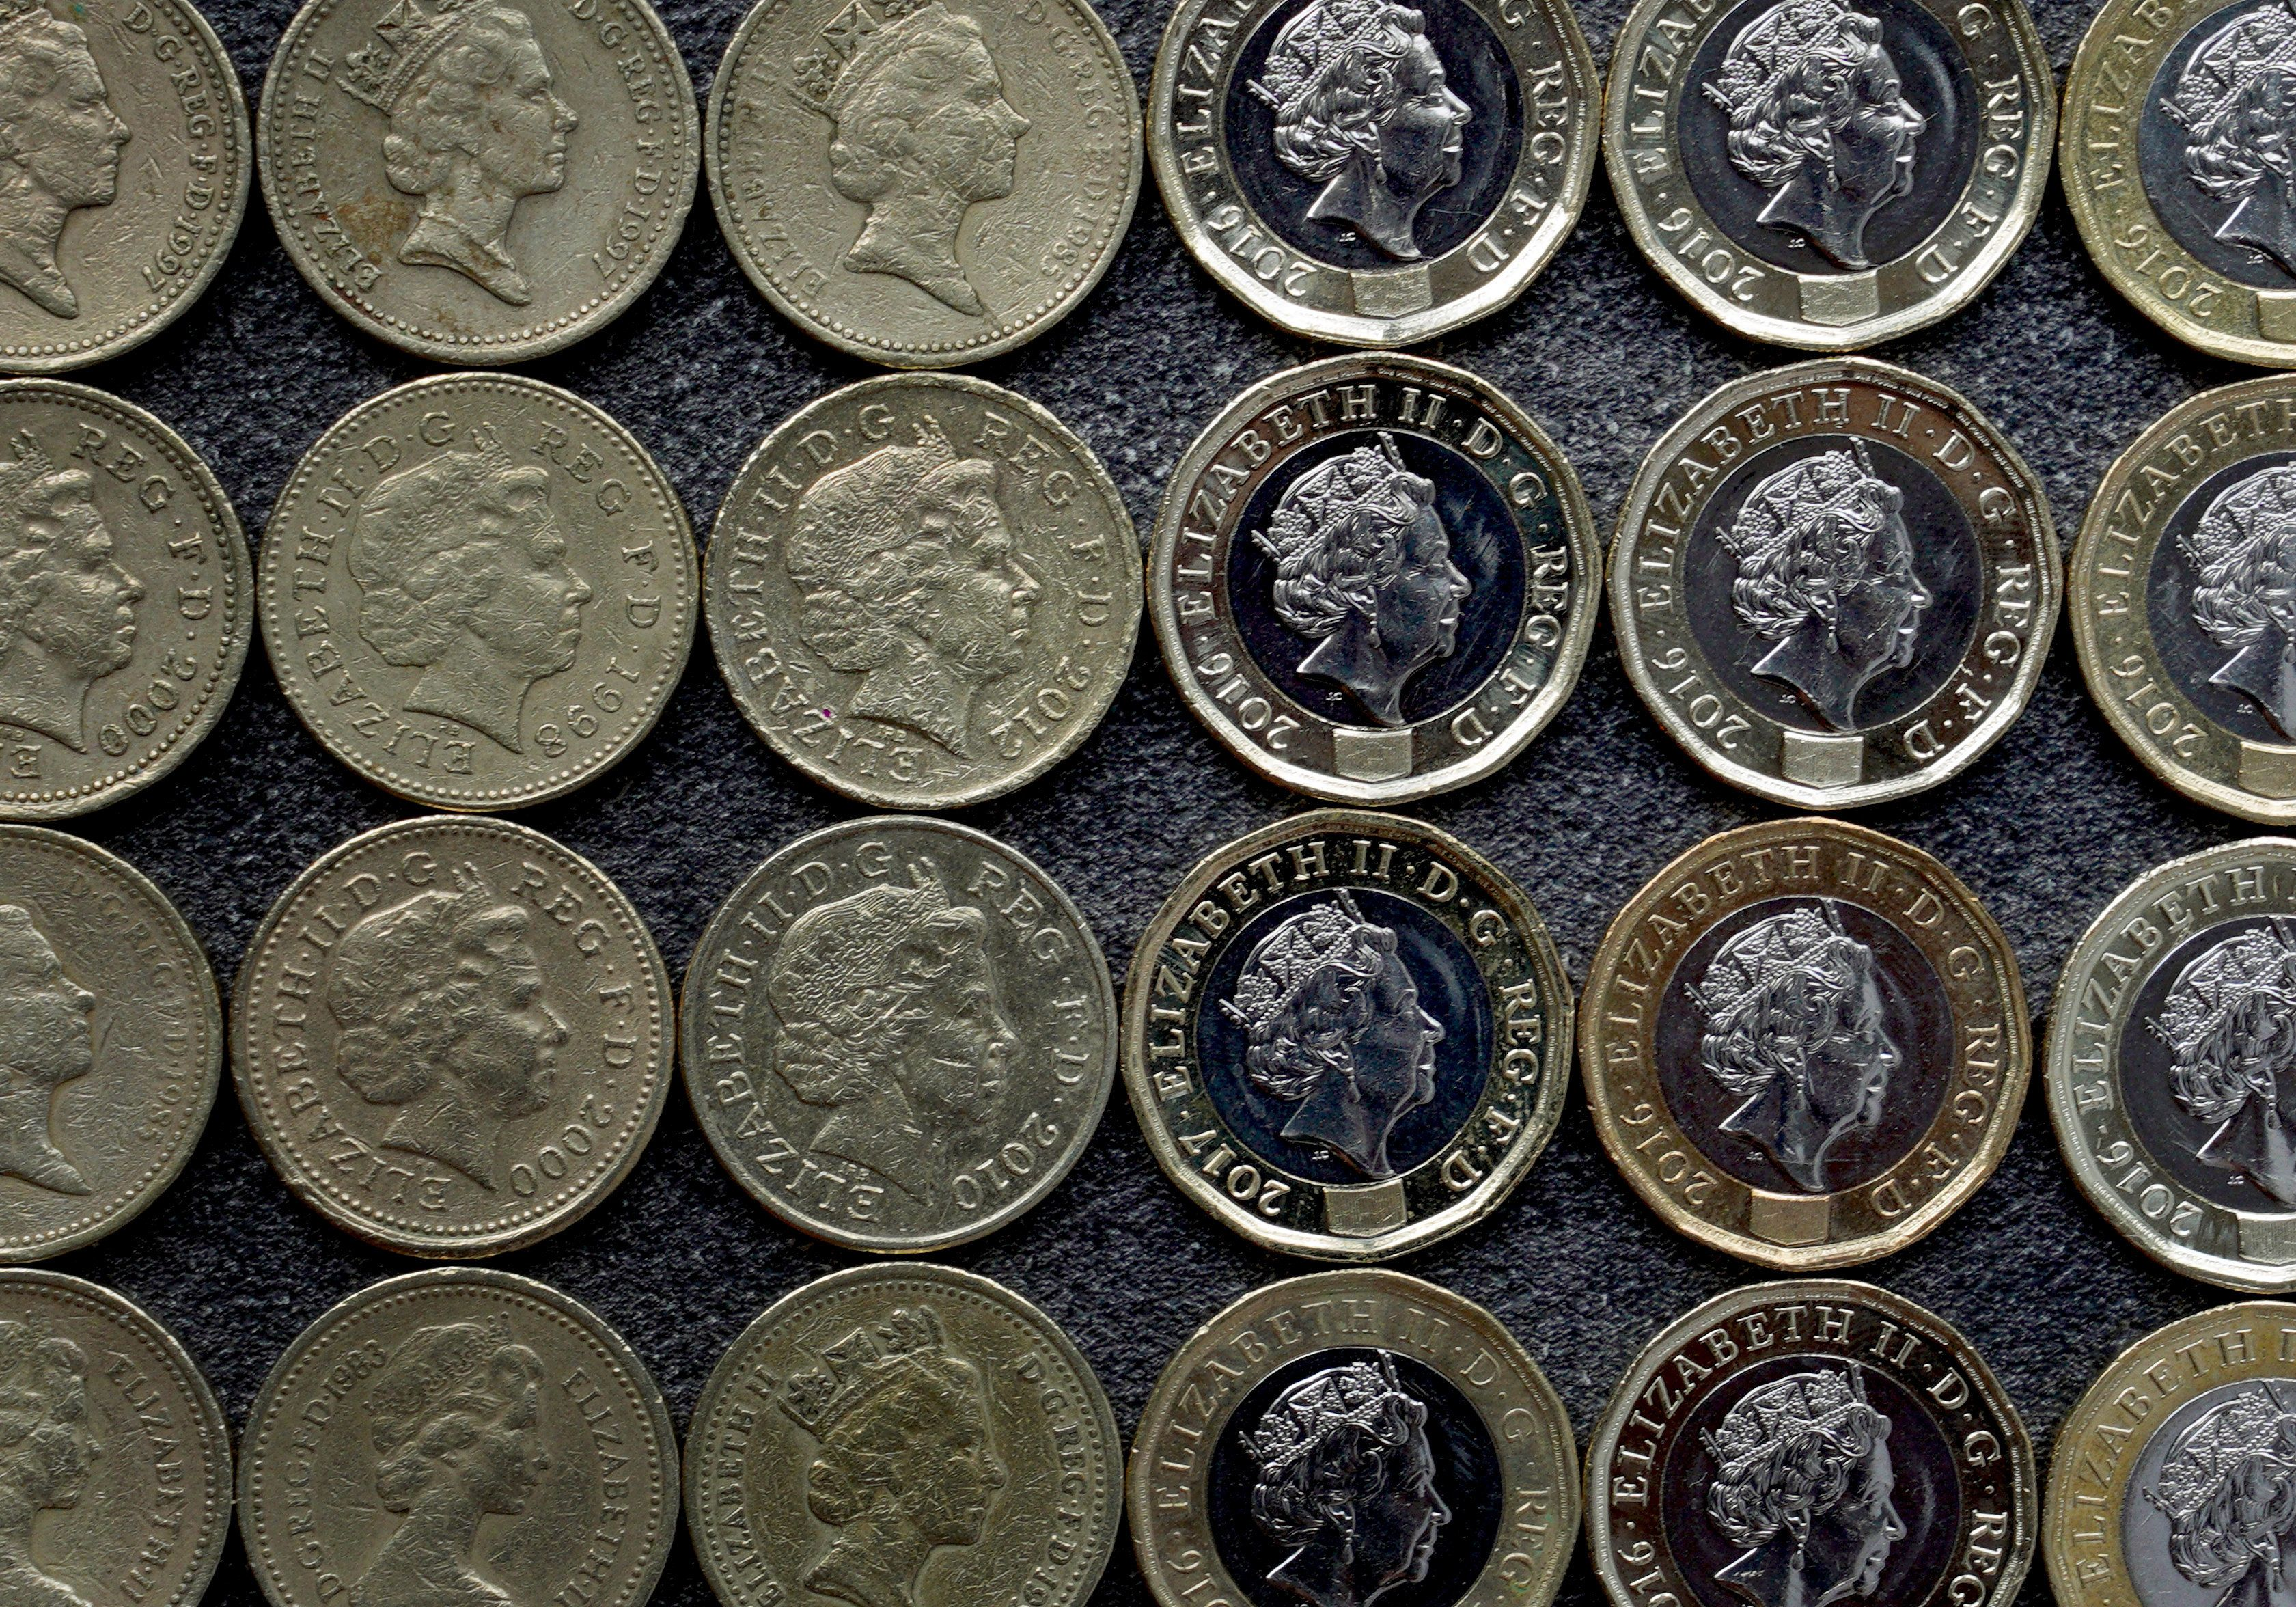 If You've Still Got Some Old Pound Coins Left, Don't Panic. Here's What You Can